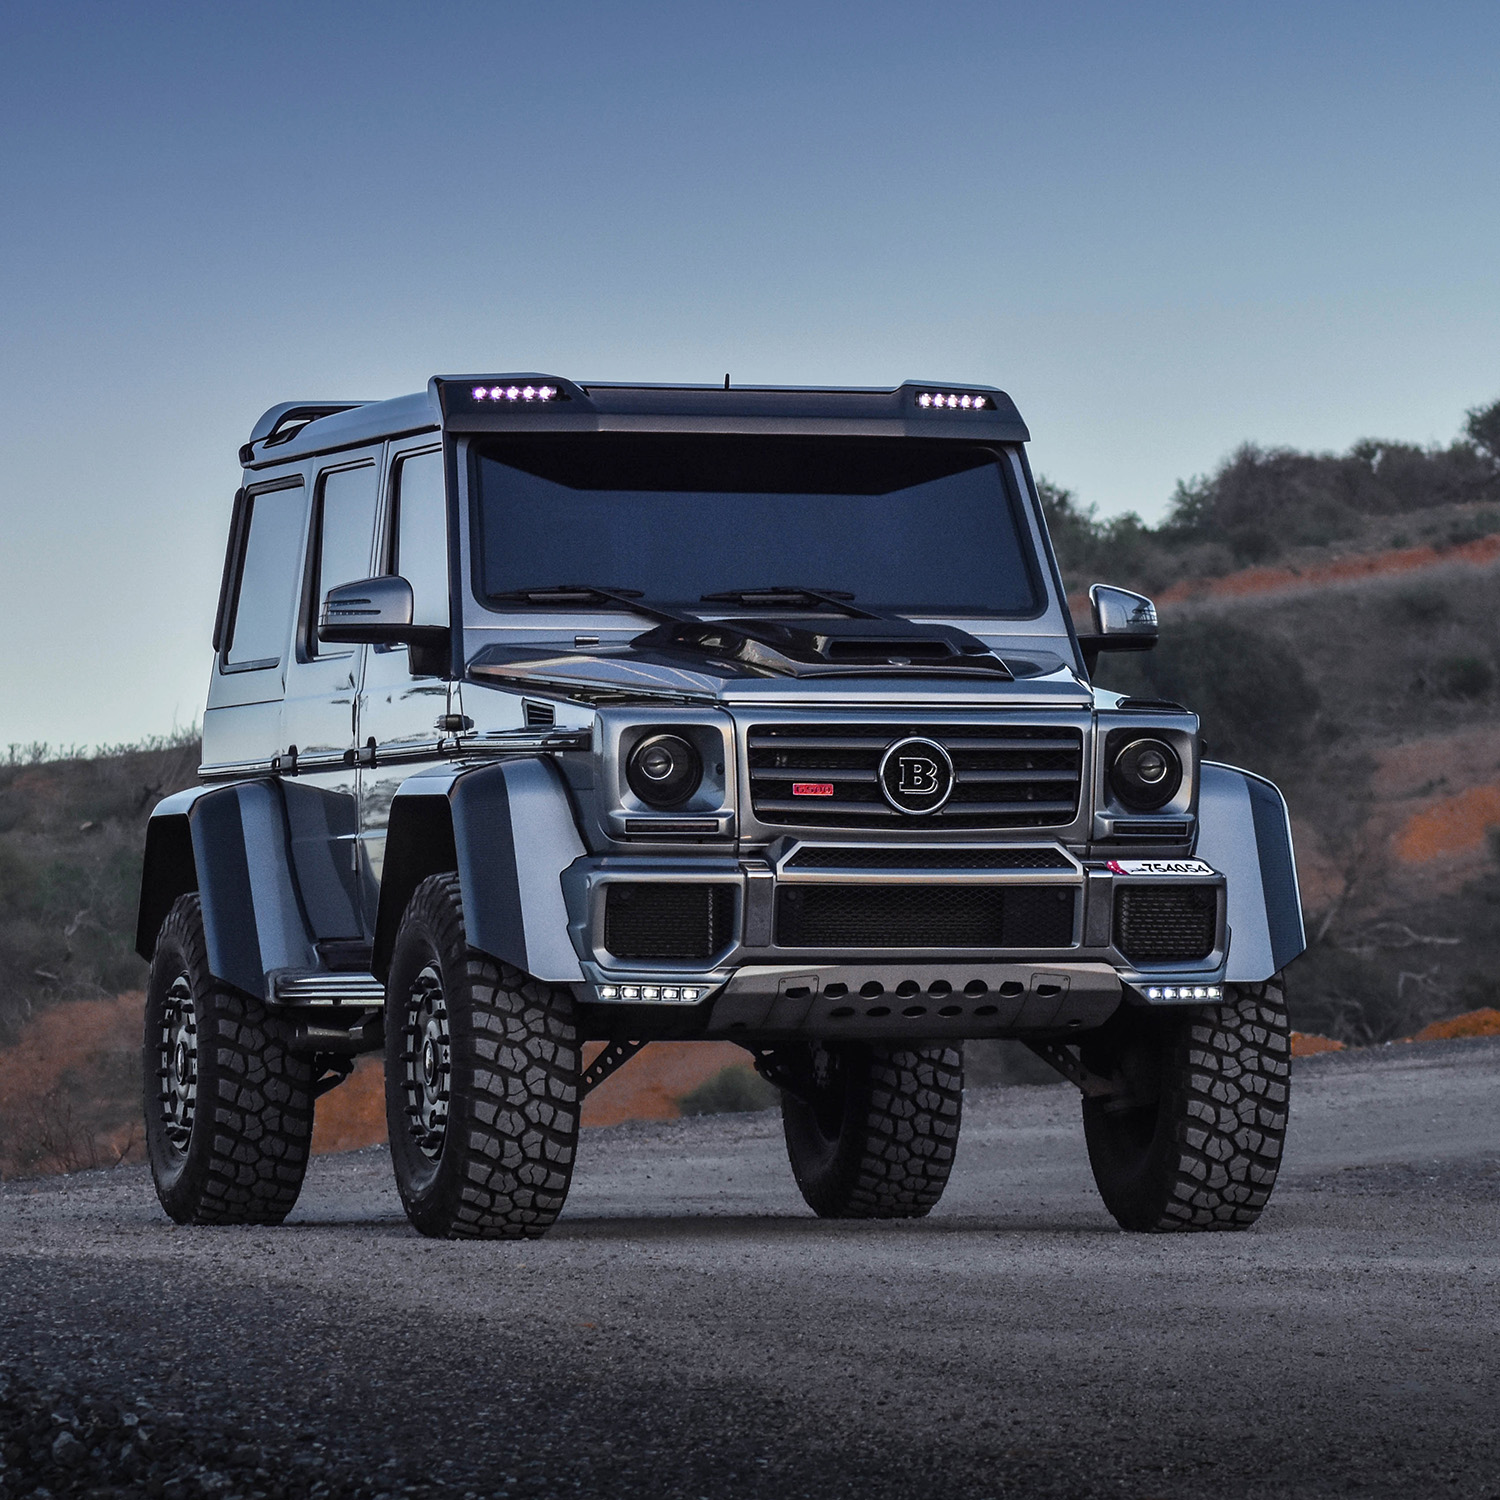 Photoshoot Brabus G500 4x4 178 From Qatar To Morocco